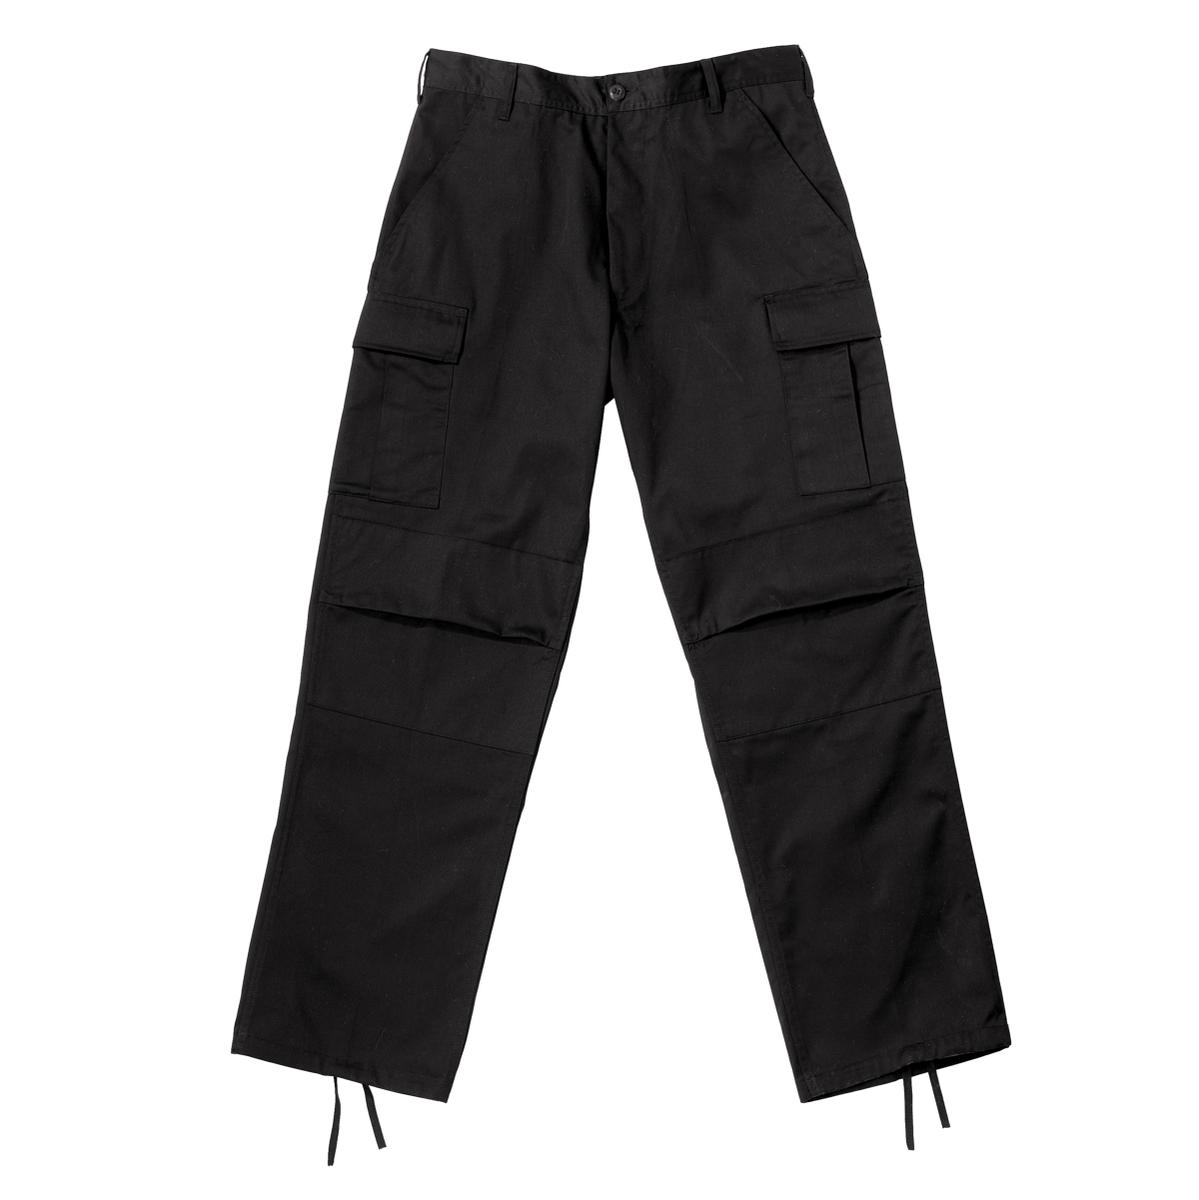 Black BDU Pants, Military Fatigues - Walmart.com